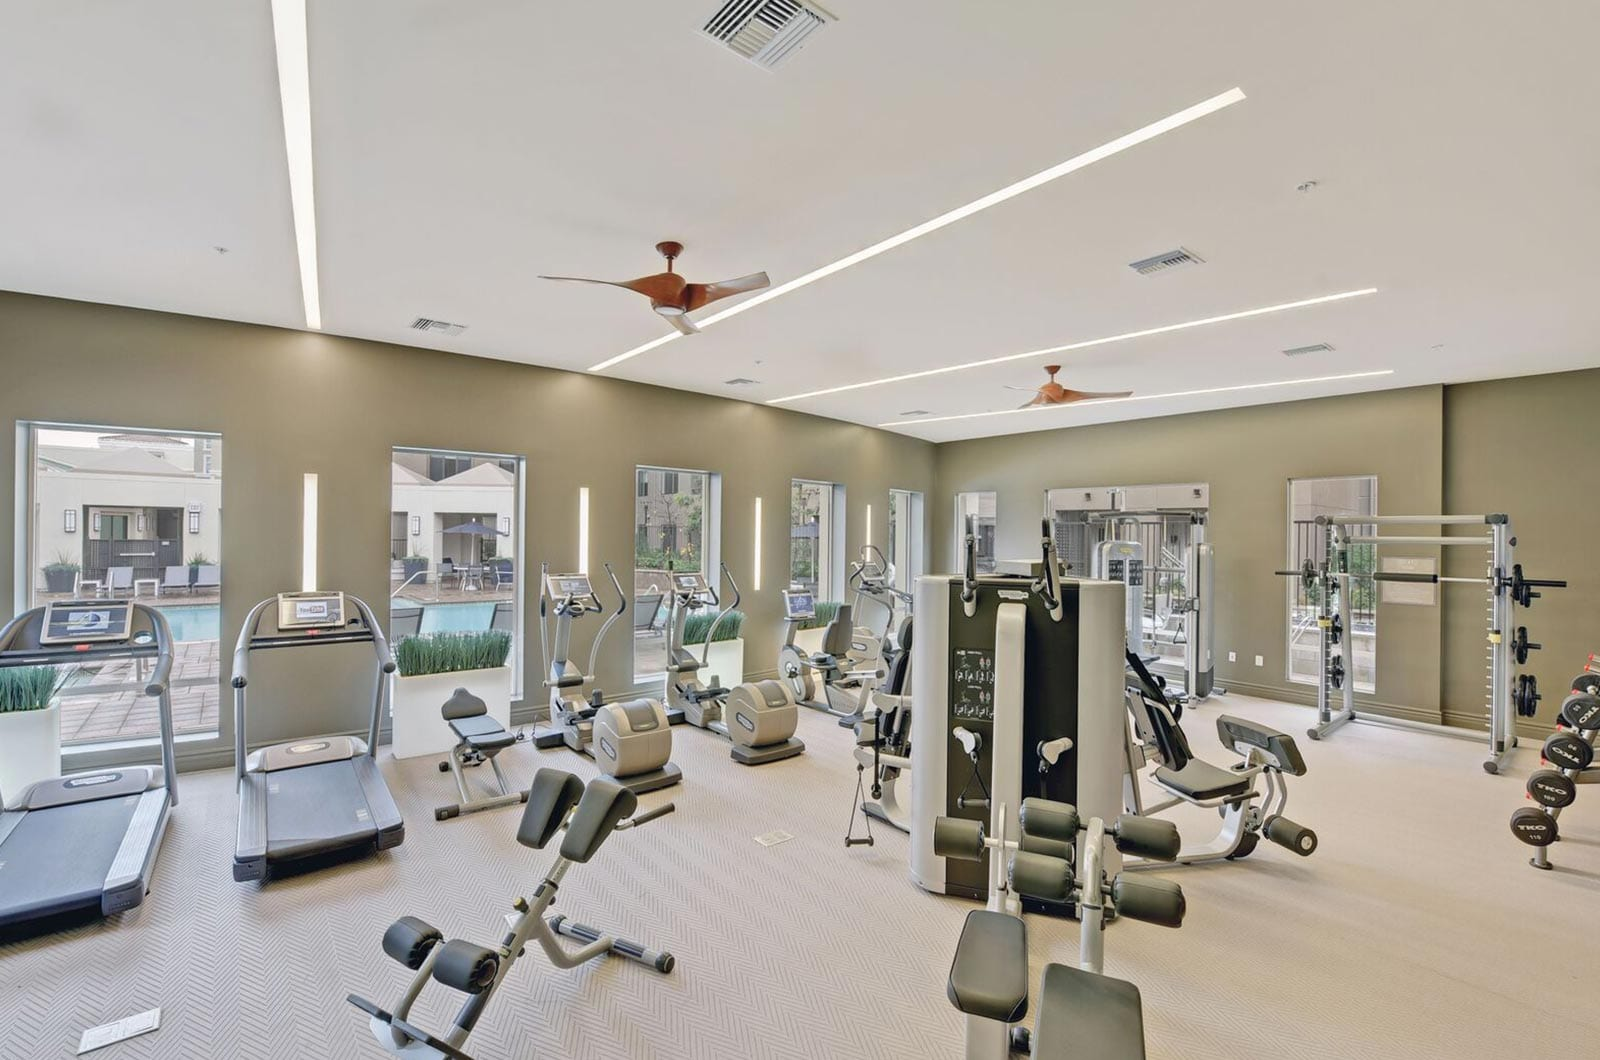 Fitness Center Virtual Tour Services | Gym Virtual Tours